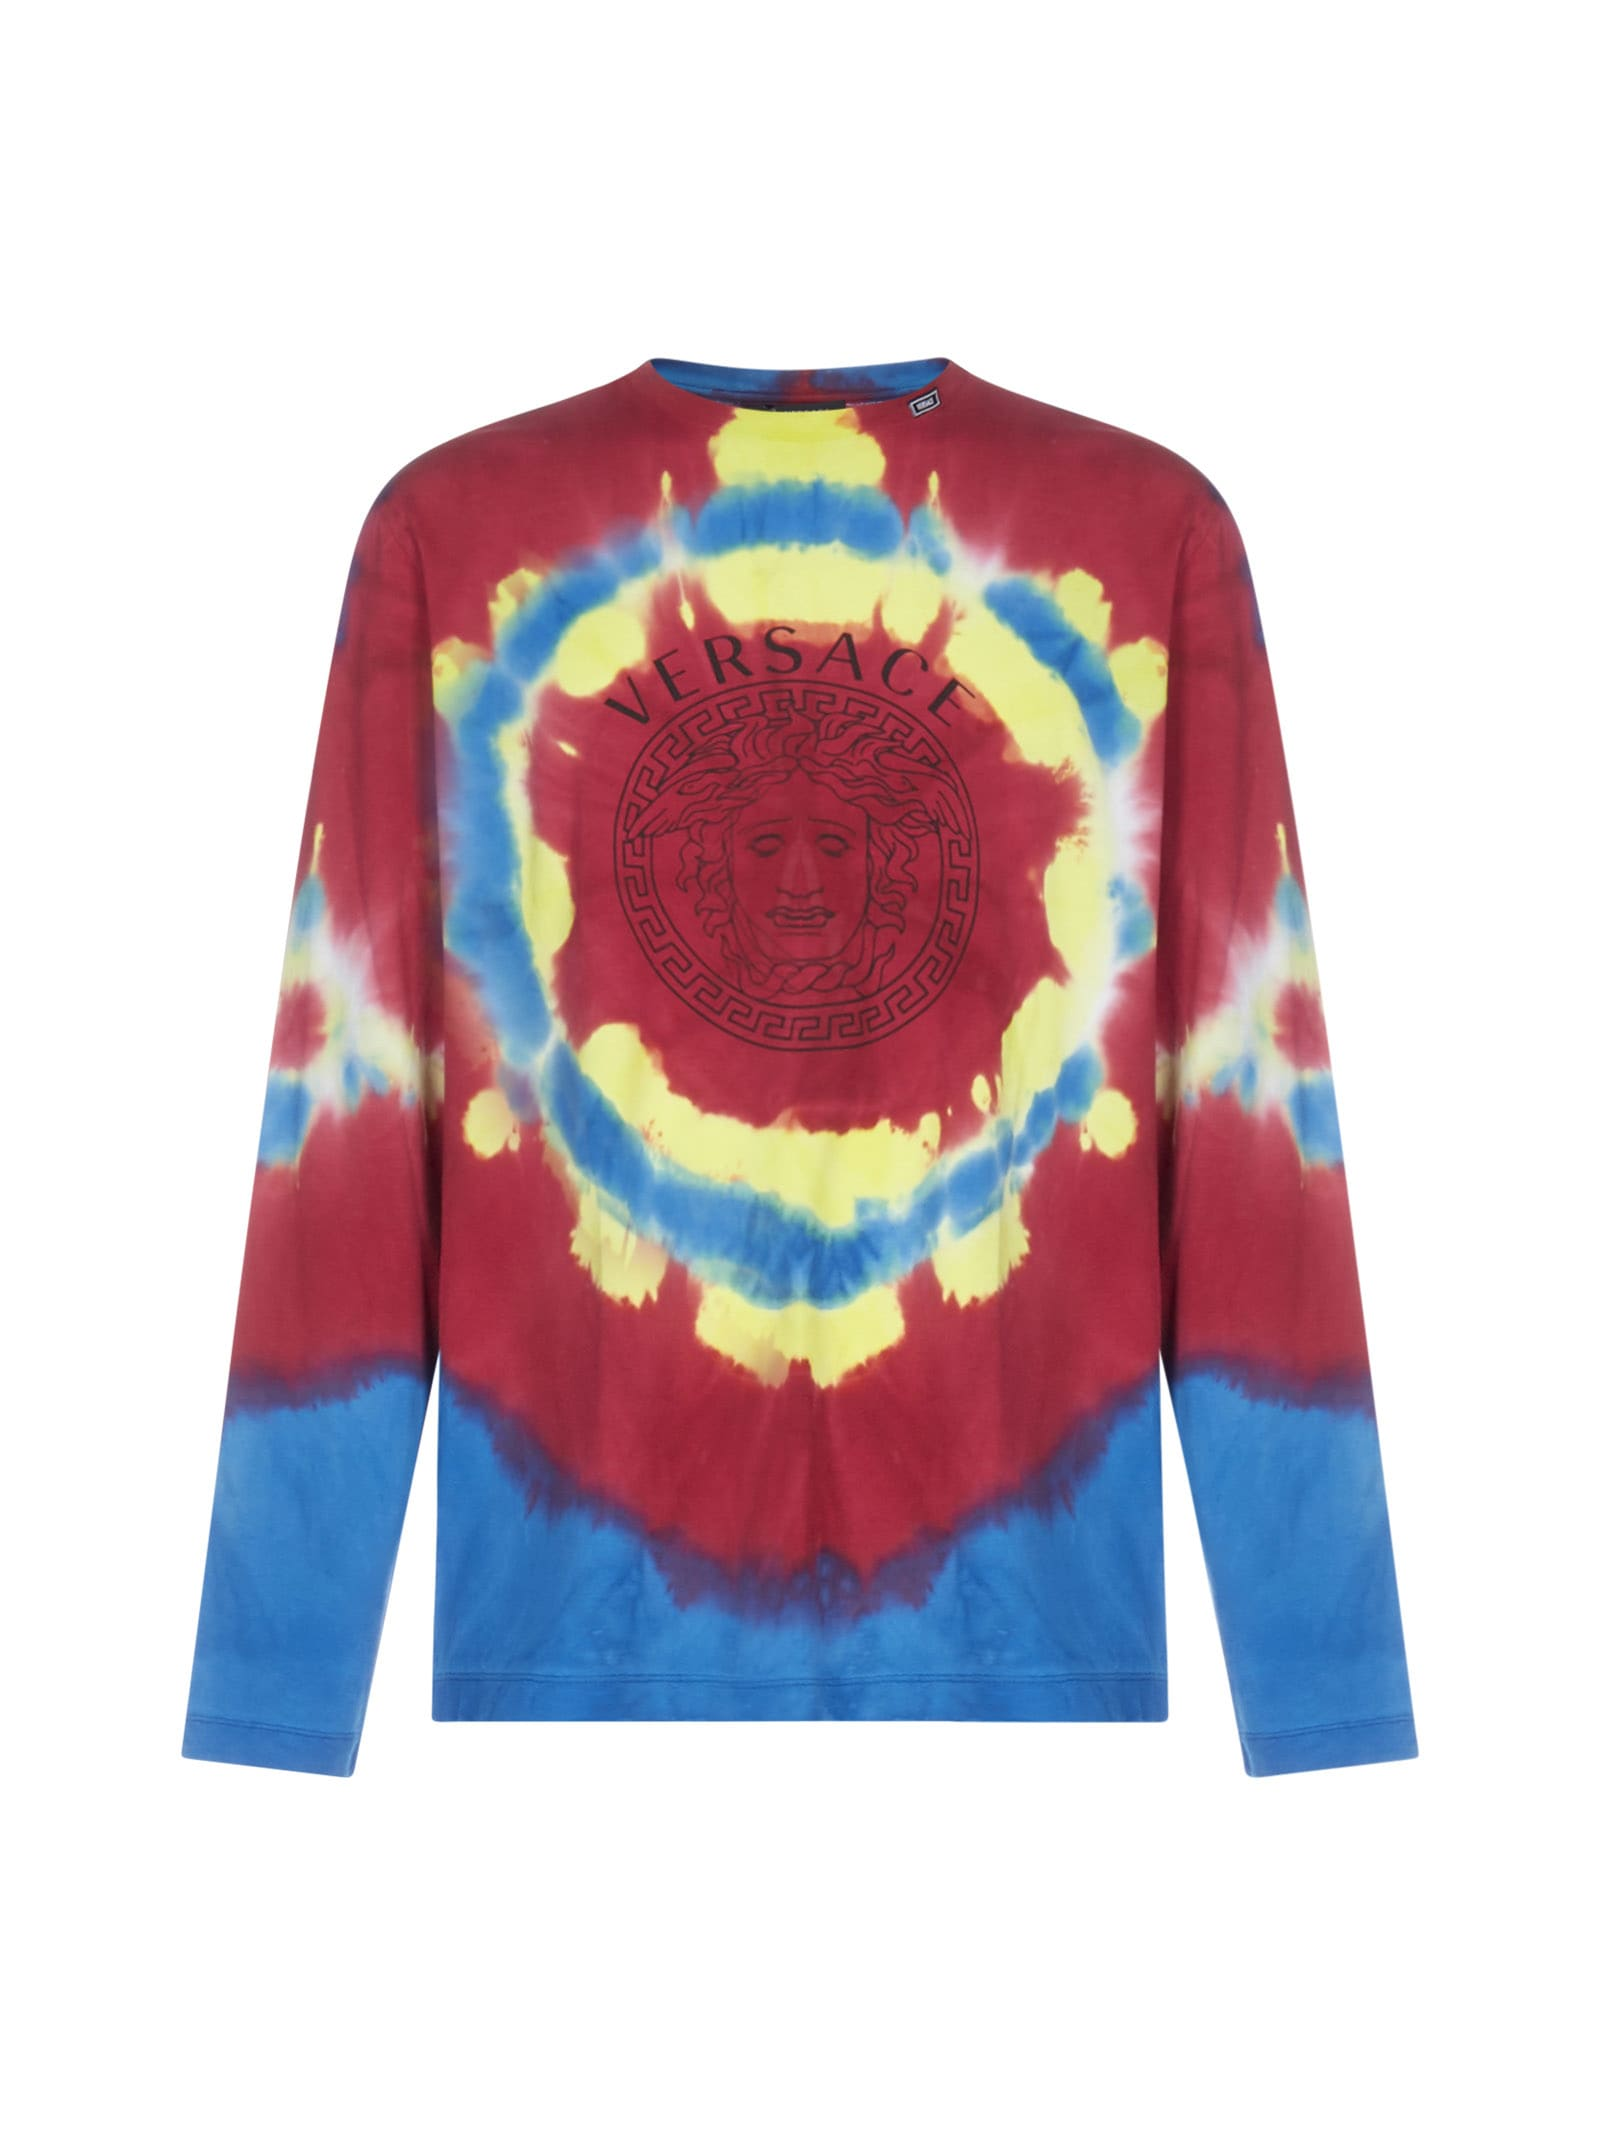 Versace Logo And Tie-dye Print Long Sleeves T-shirt